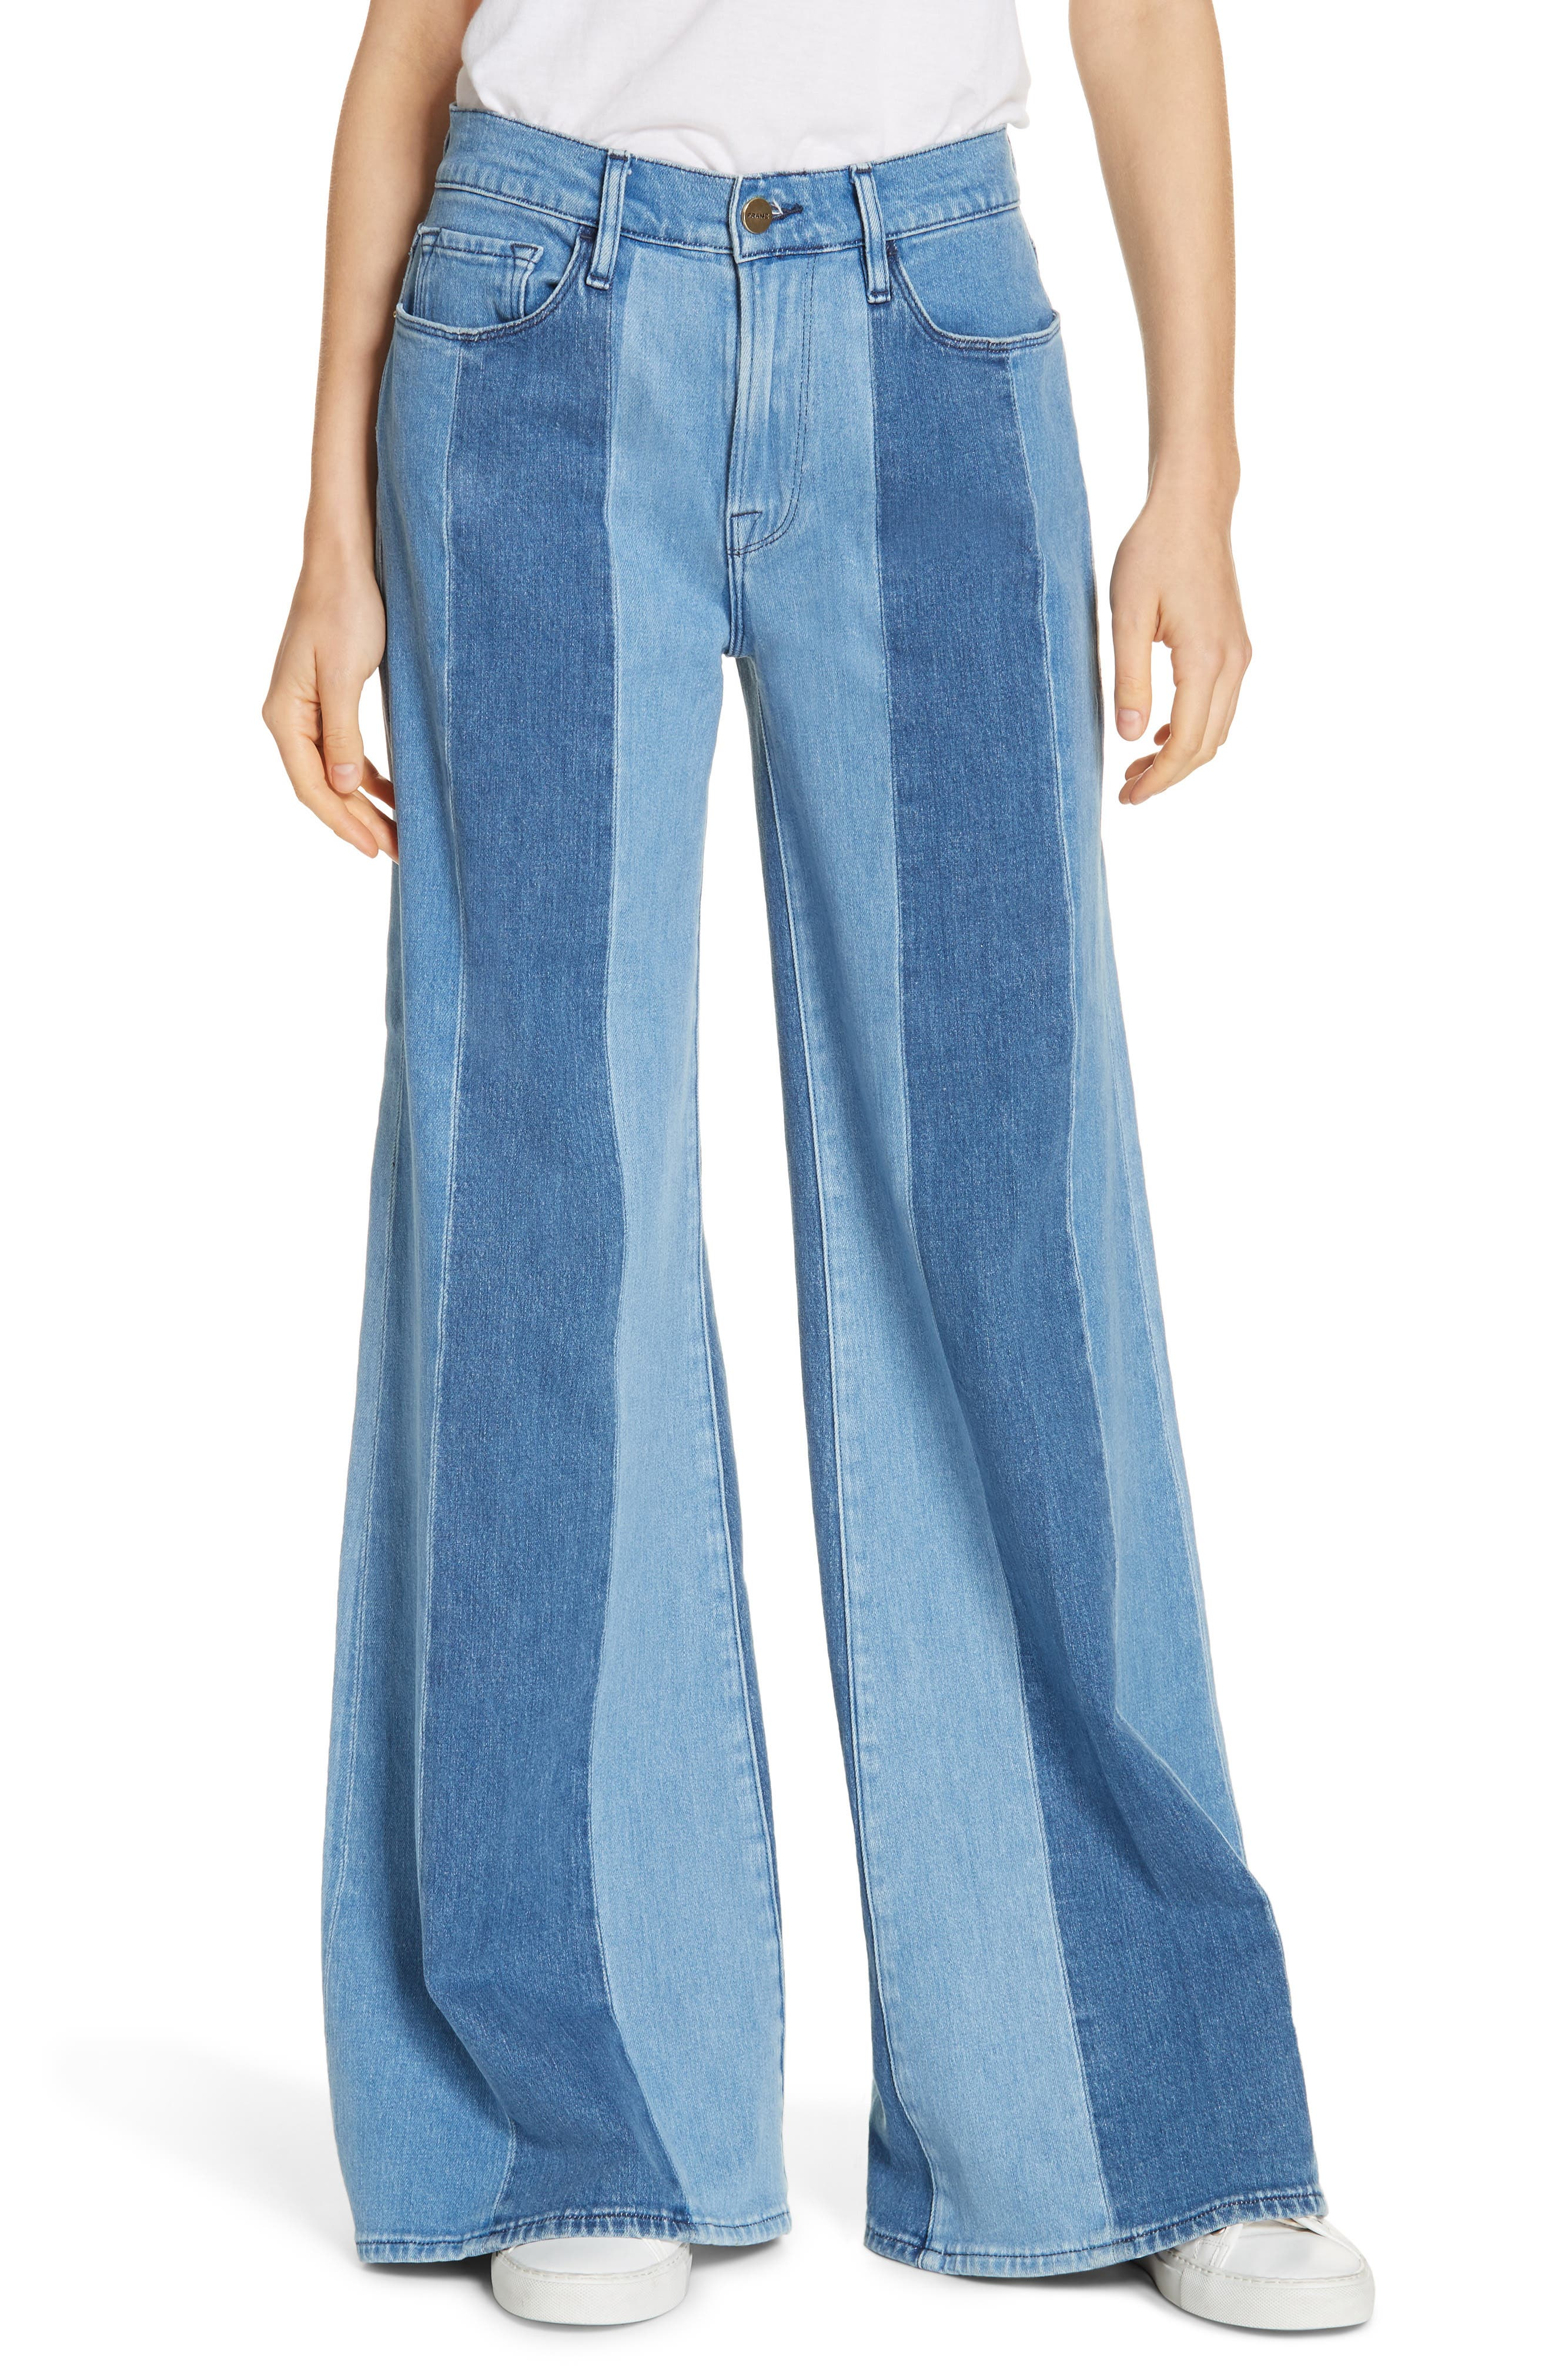 Le Palazzo Paneled Wide Leg Jeans,                         Main,                         color, VINEYARD